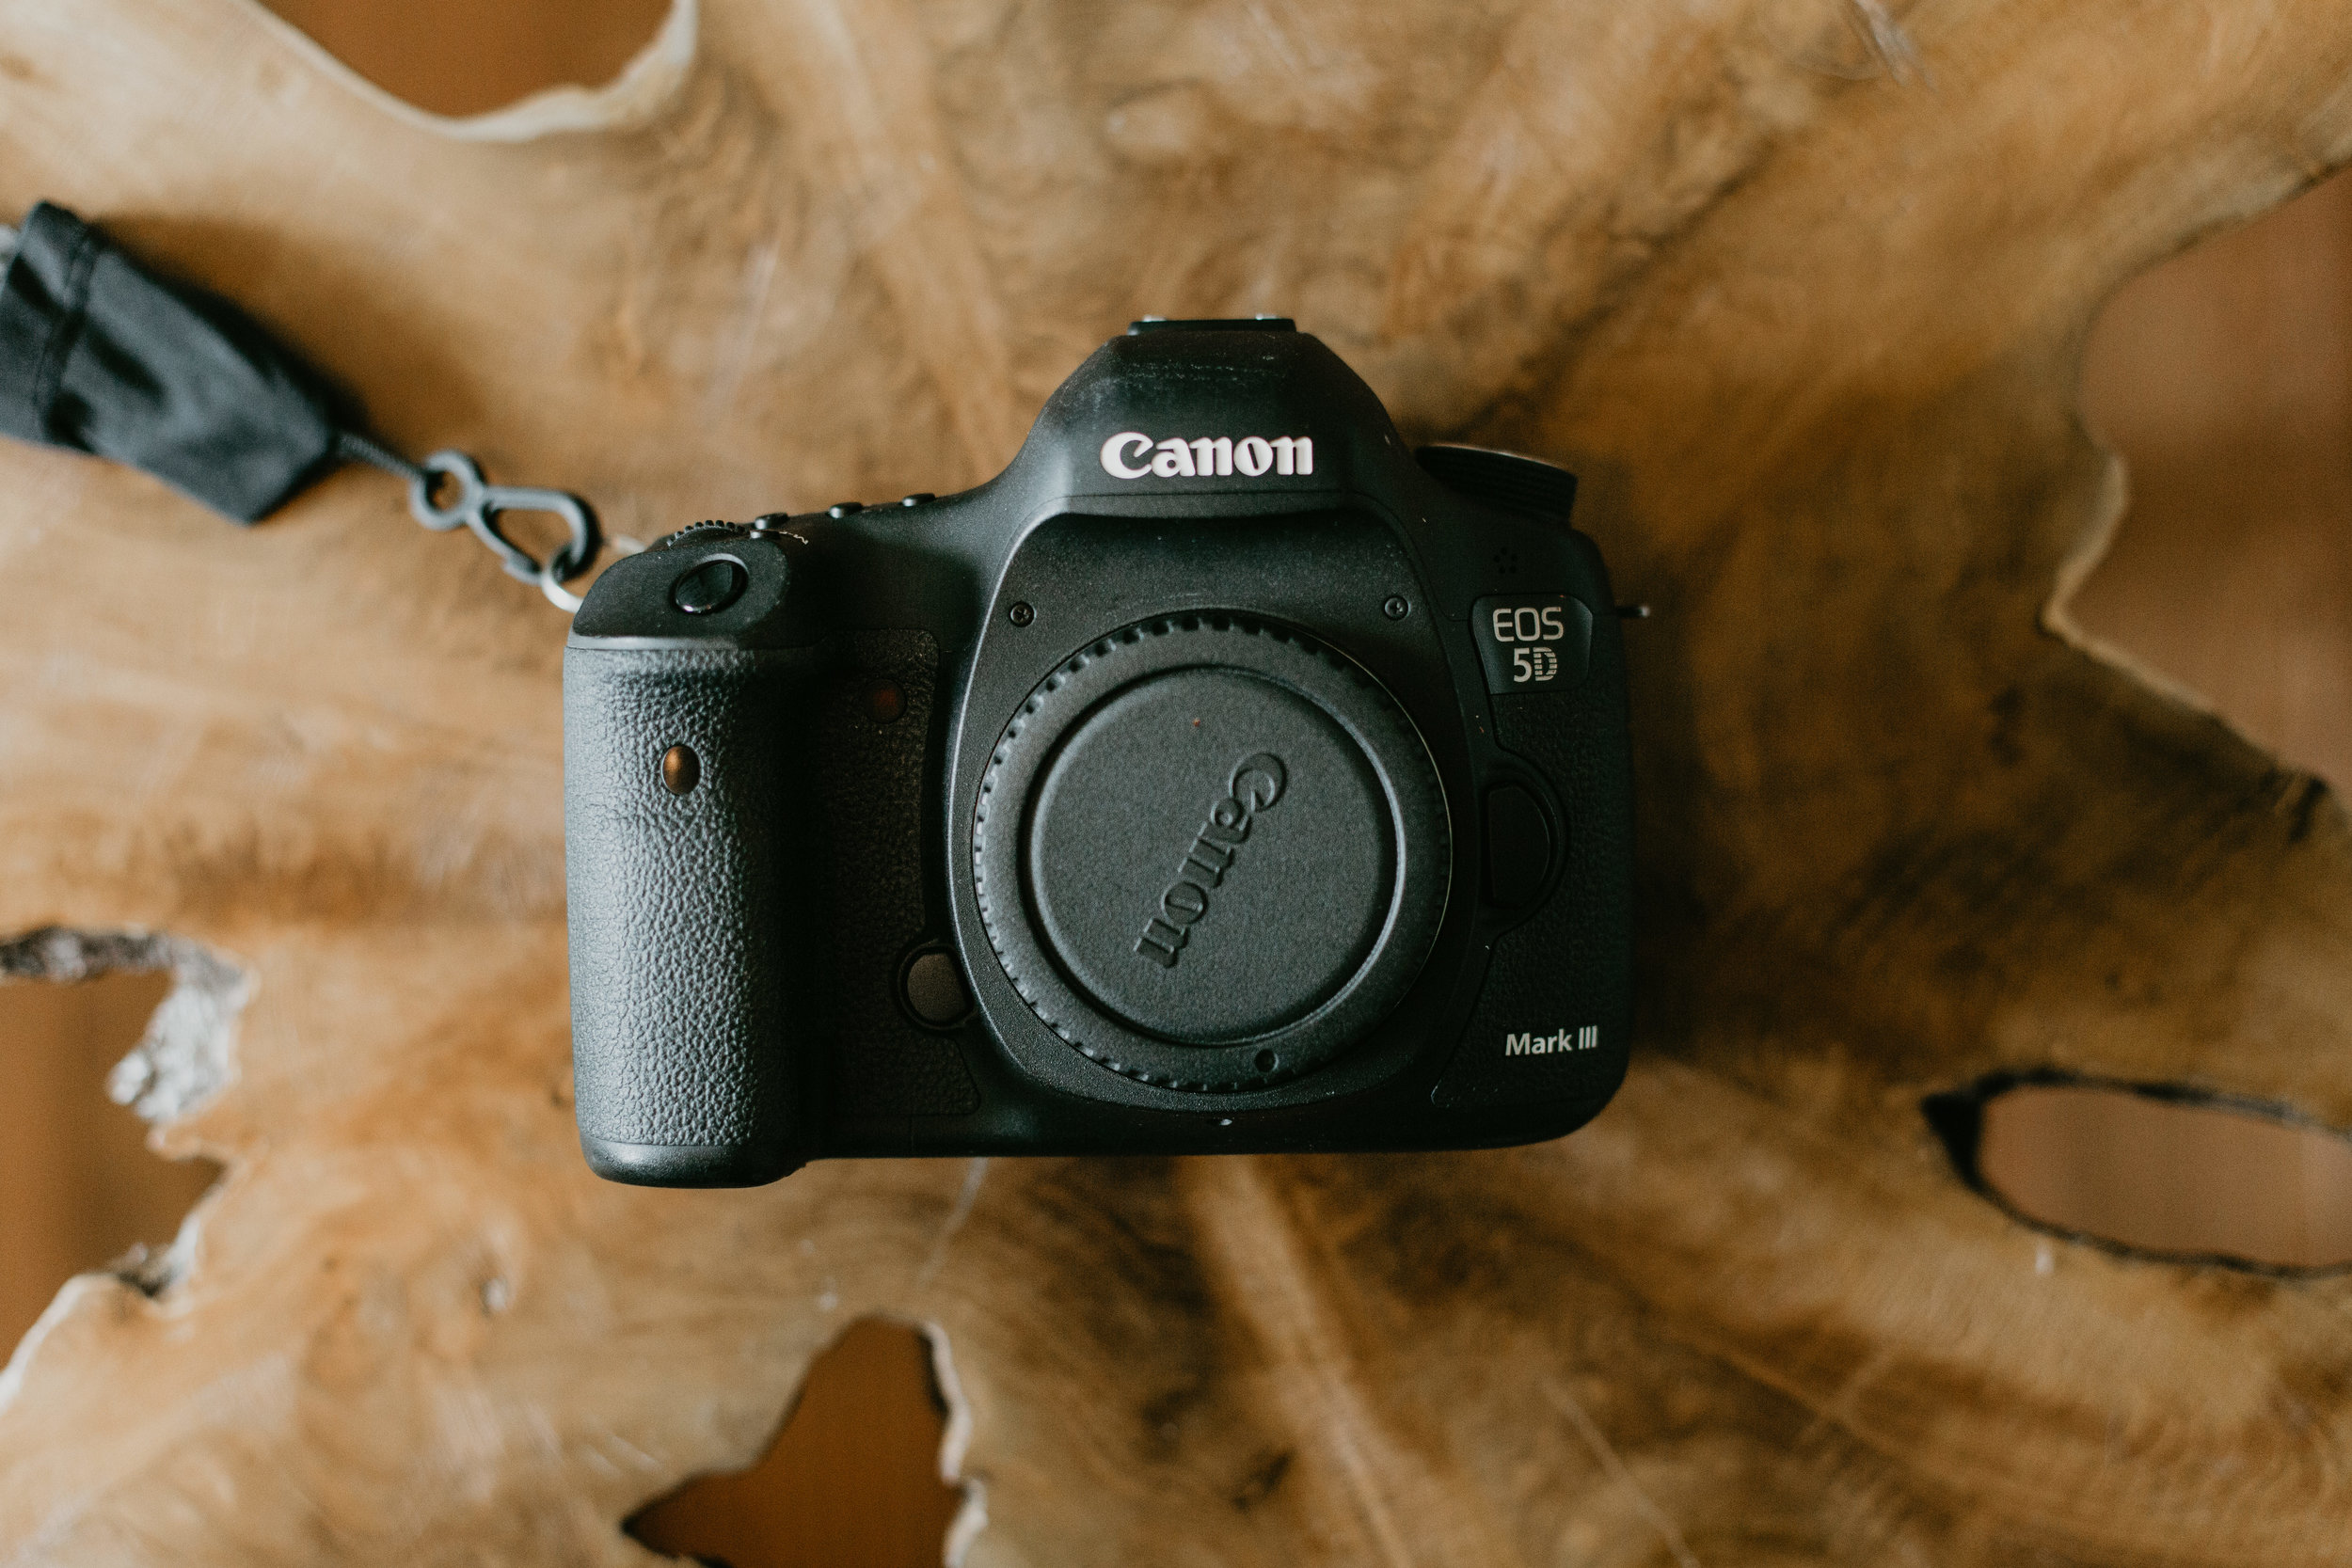 Nicole-daacke-photography-recommended gear-5.jpg